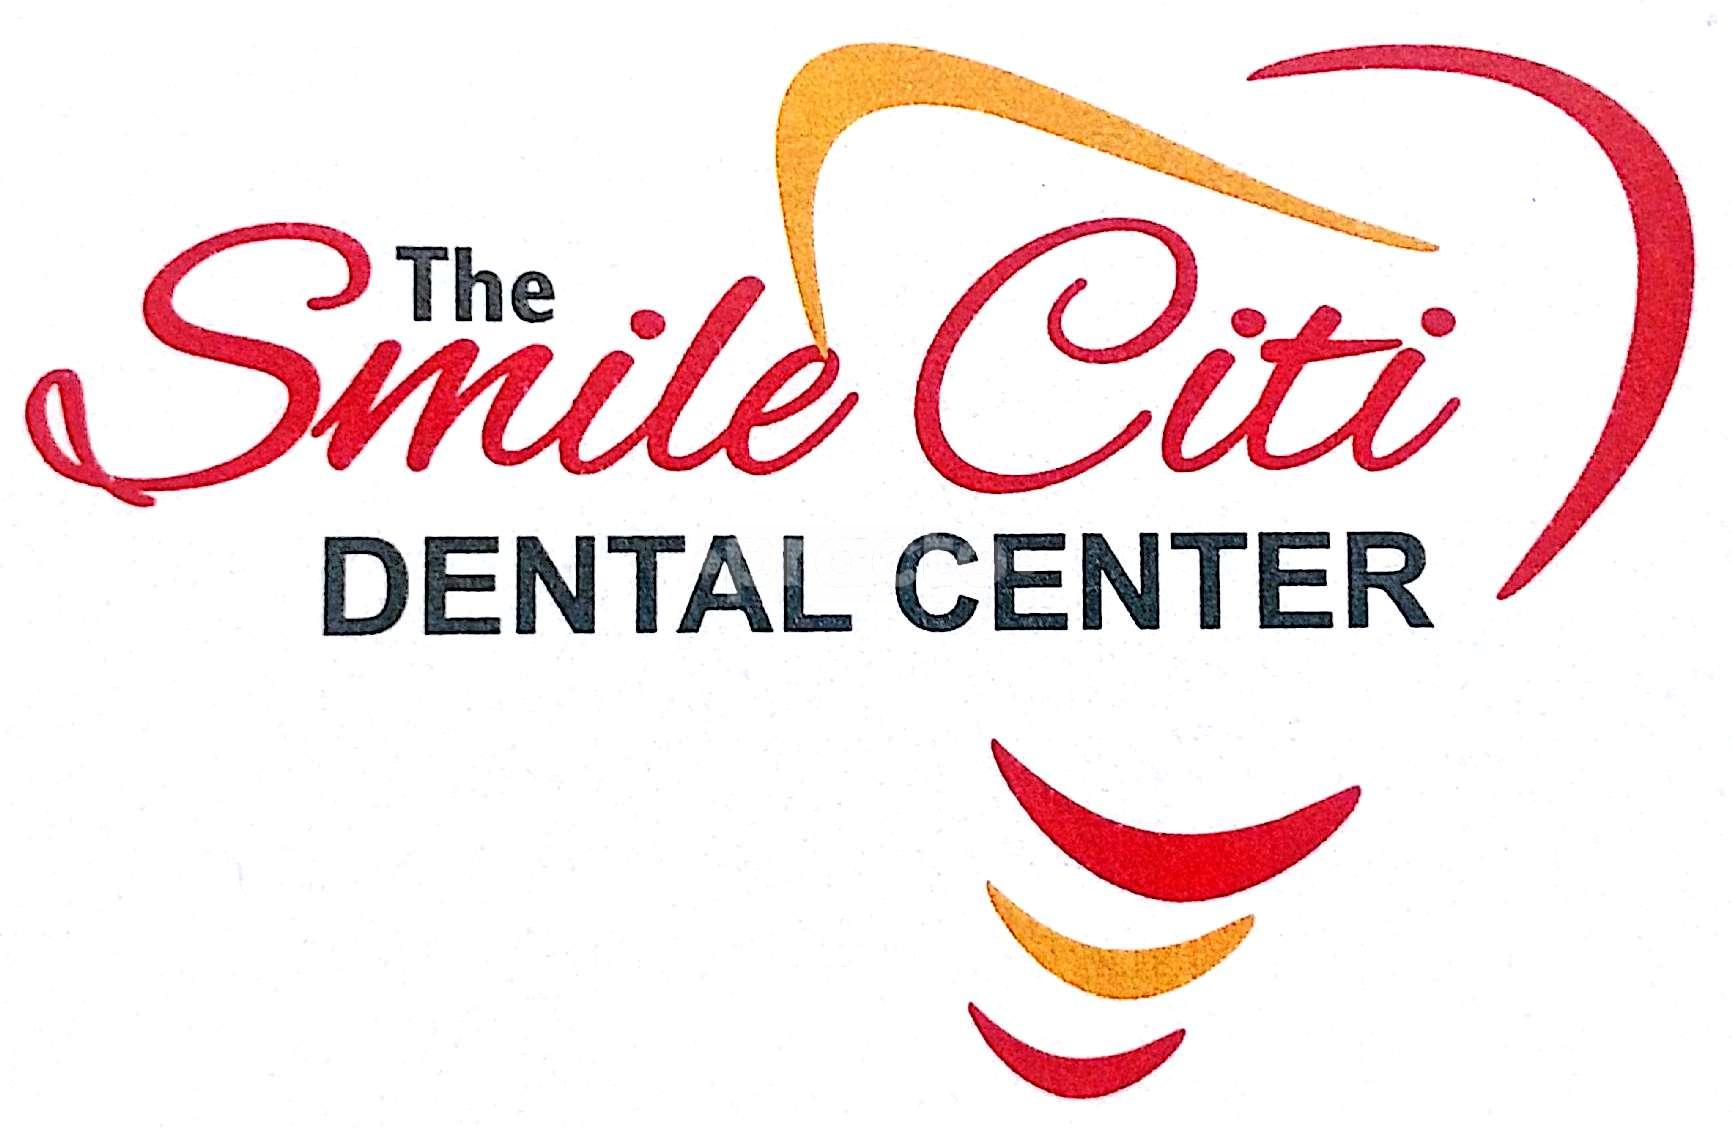 The Smile Citi Dental Center